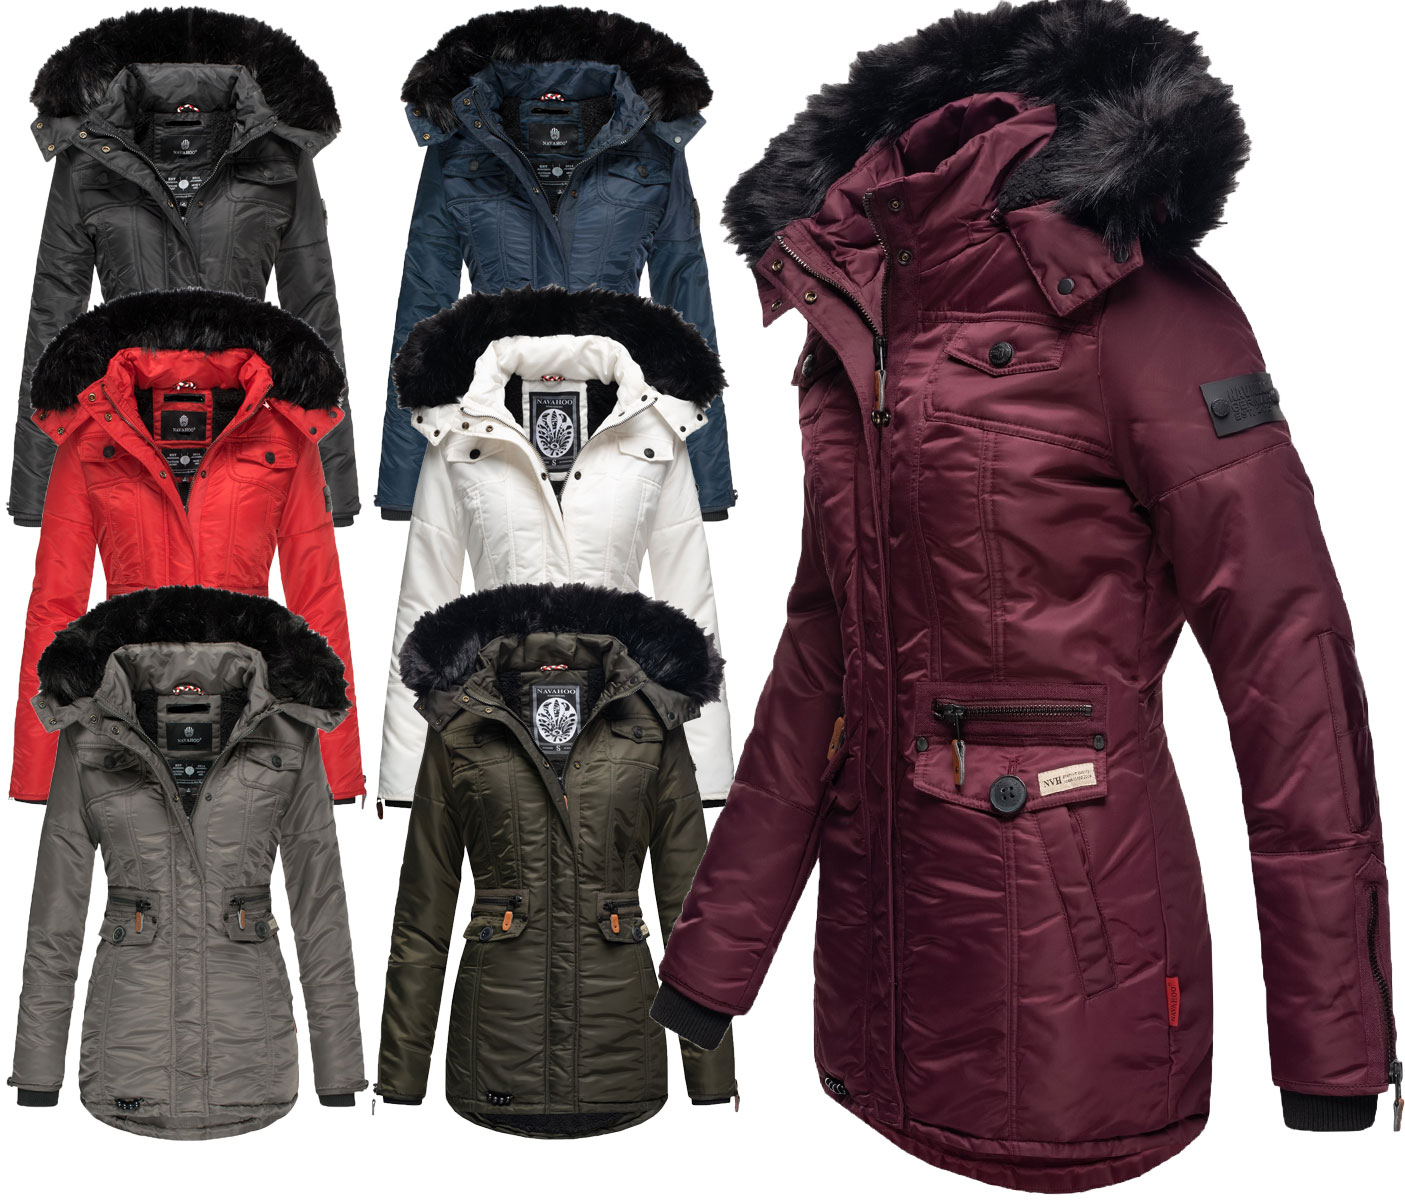 Details about Navahoo Ladies Winter Jacket Winter Parka Coat Outdoor Warm Lining Honey